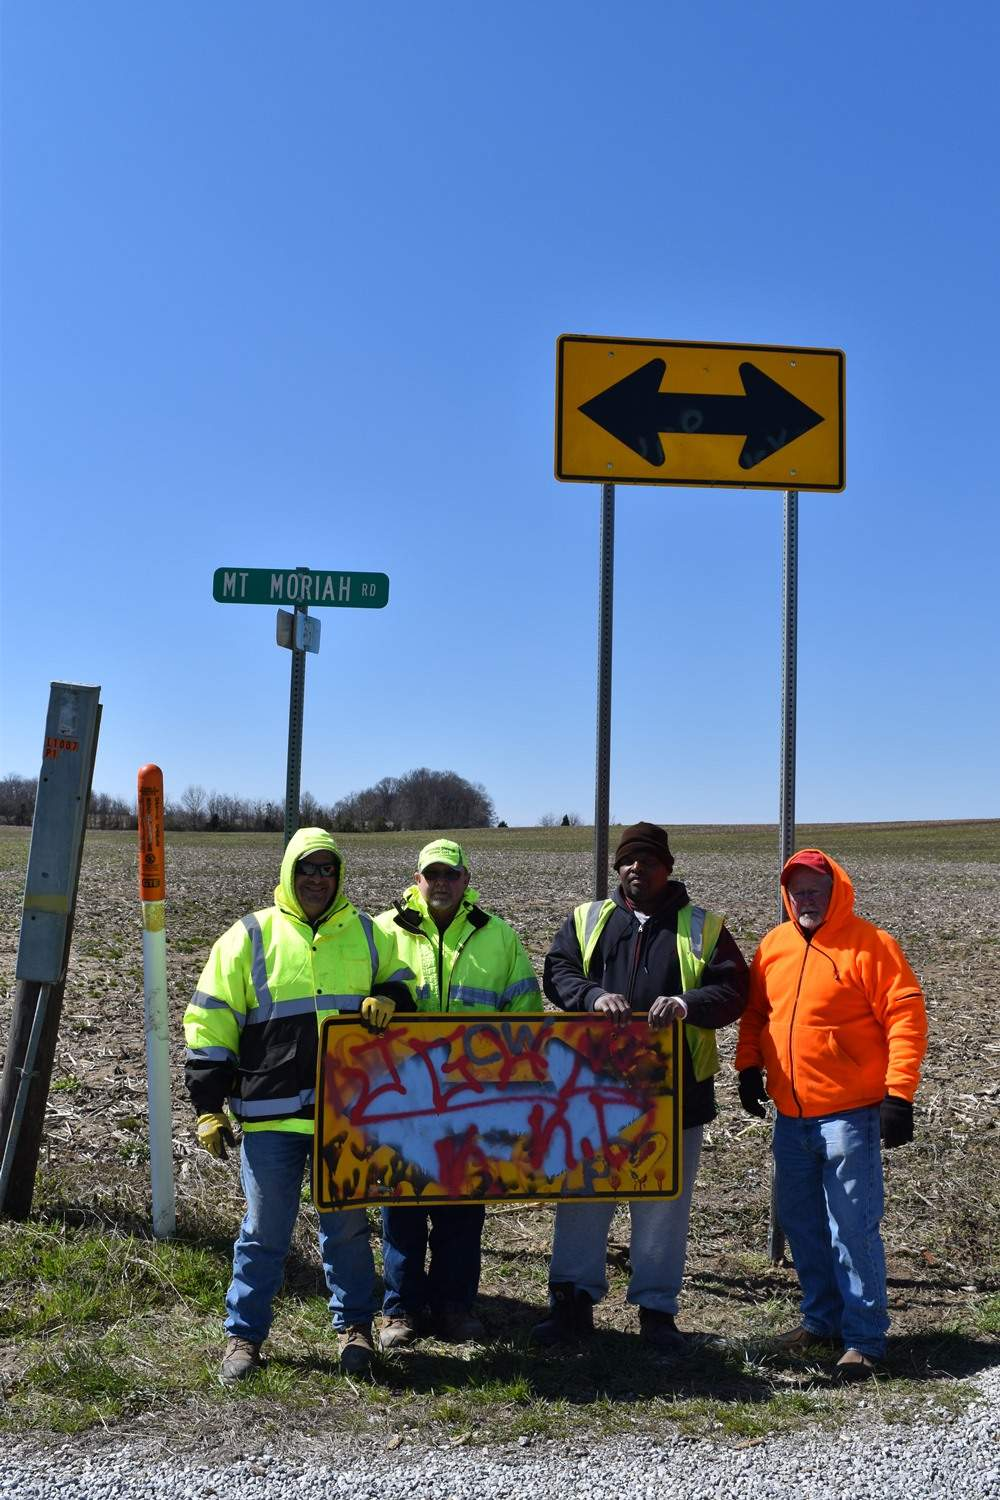 From left, Harrisburg Township workers Charlie Hyers and Rick Duffy, Earnfare worker Eric McWilliams and Road Commissioner Bob Holmes shows a sign vandalized within and hour or two of placement Tuesday afternoon, along with a new replacement sign that is elevated 10 feet to minimize damage from vandals.